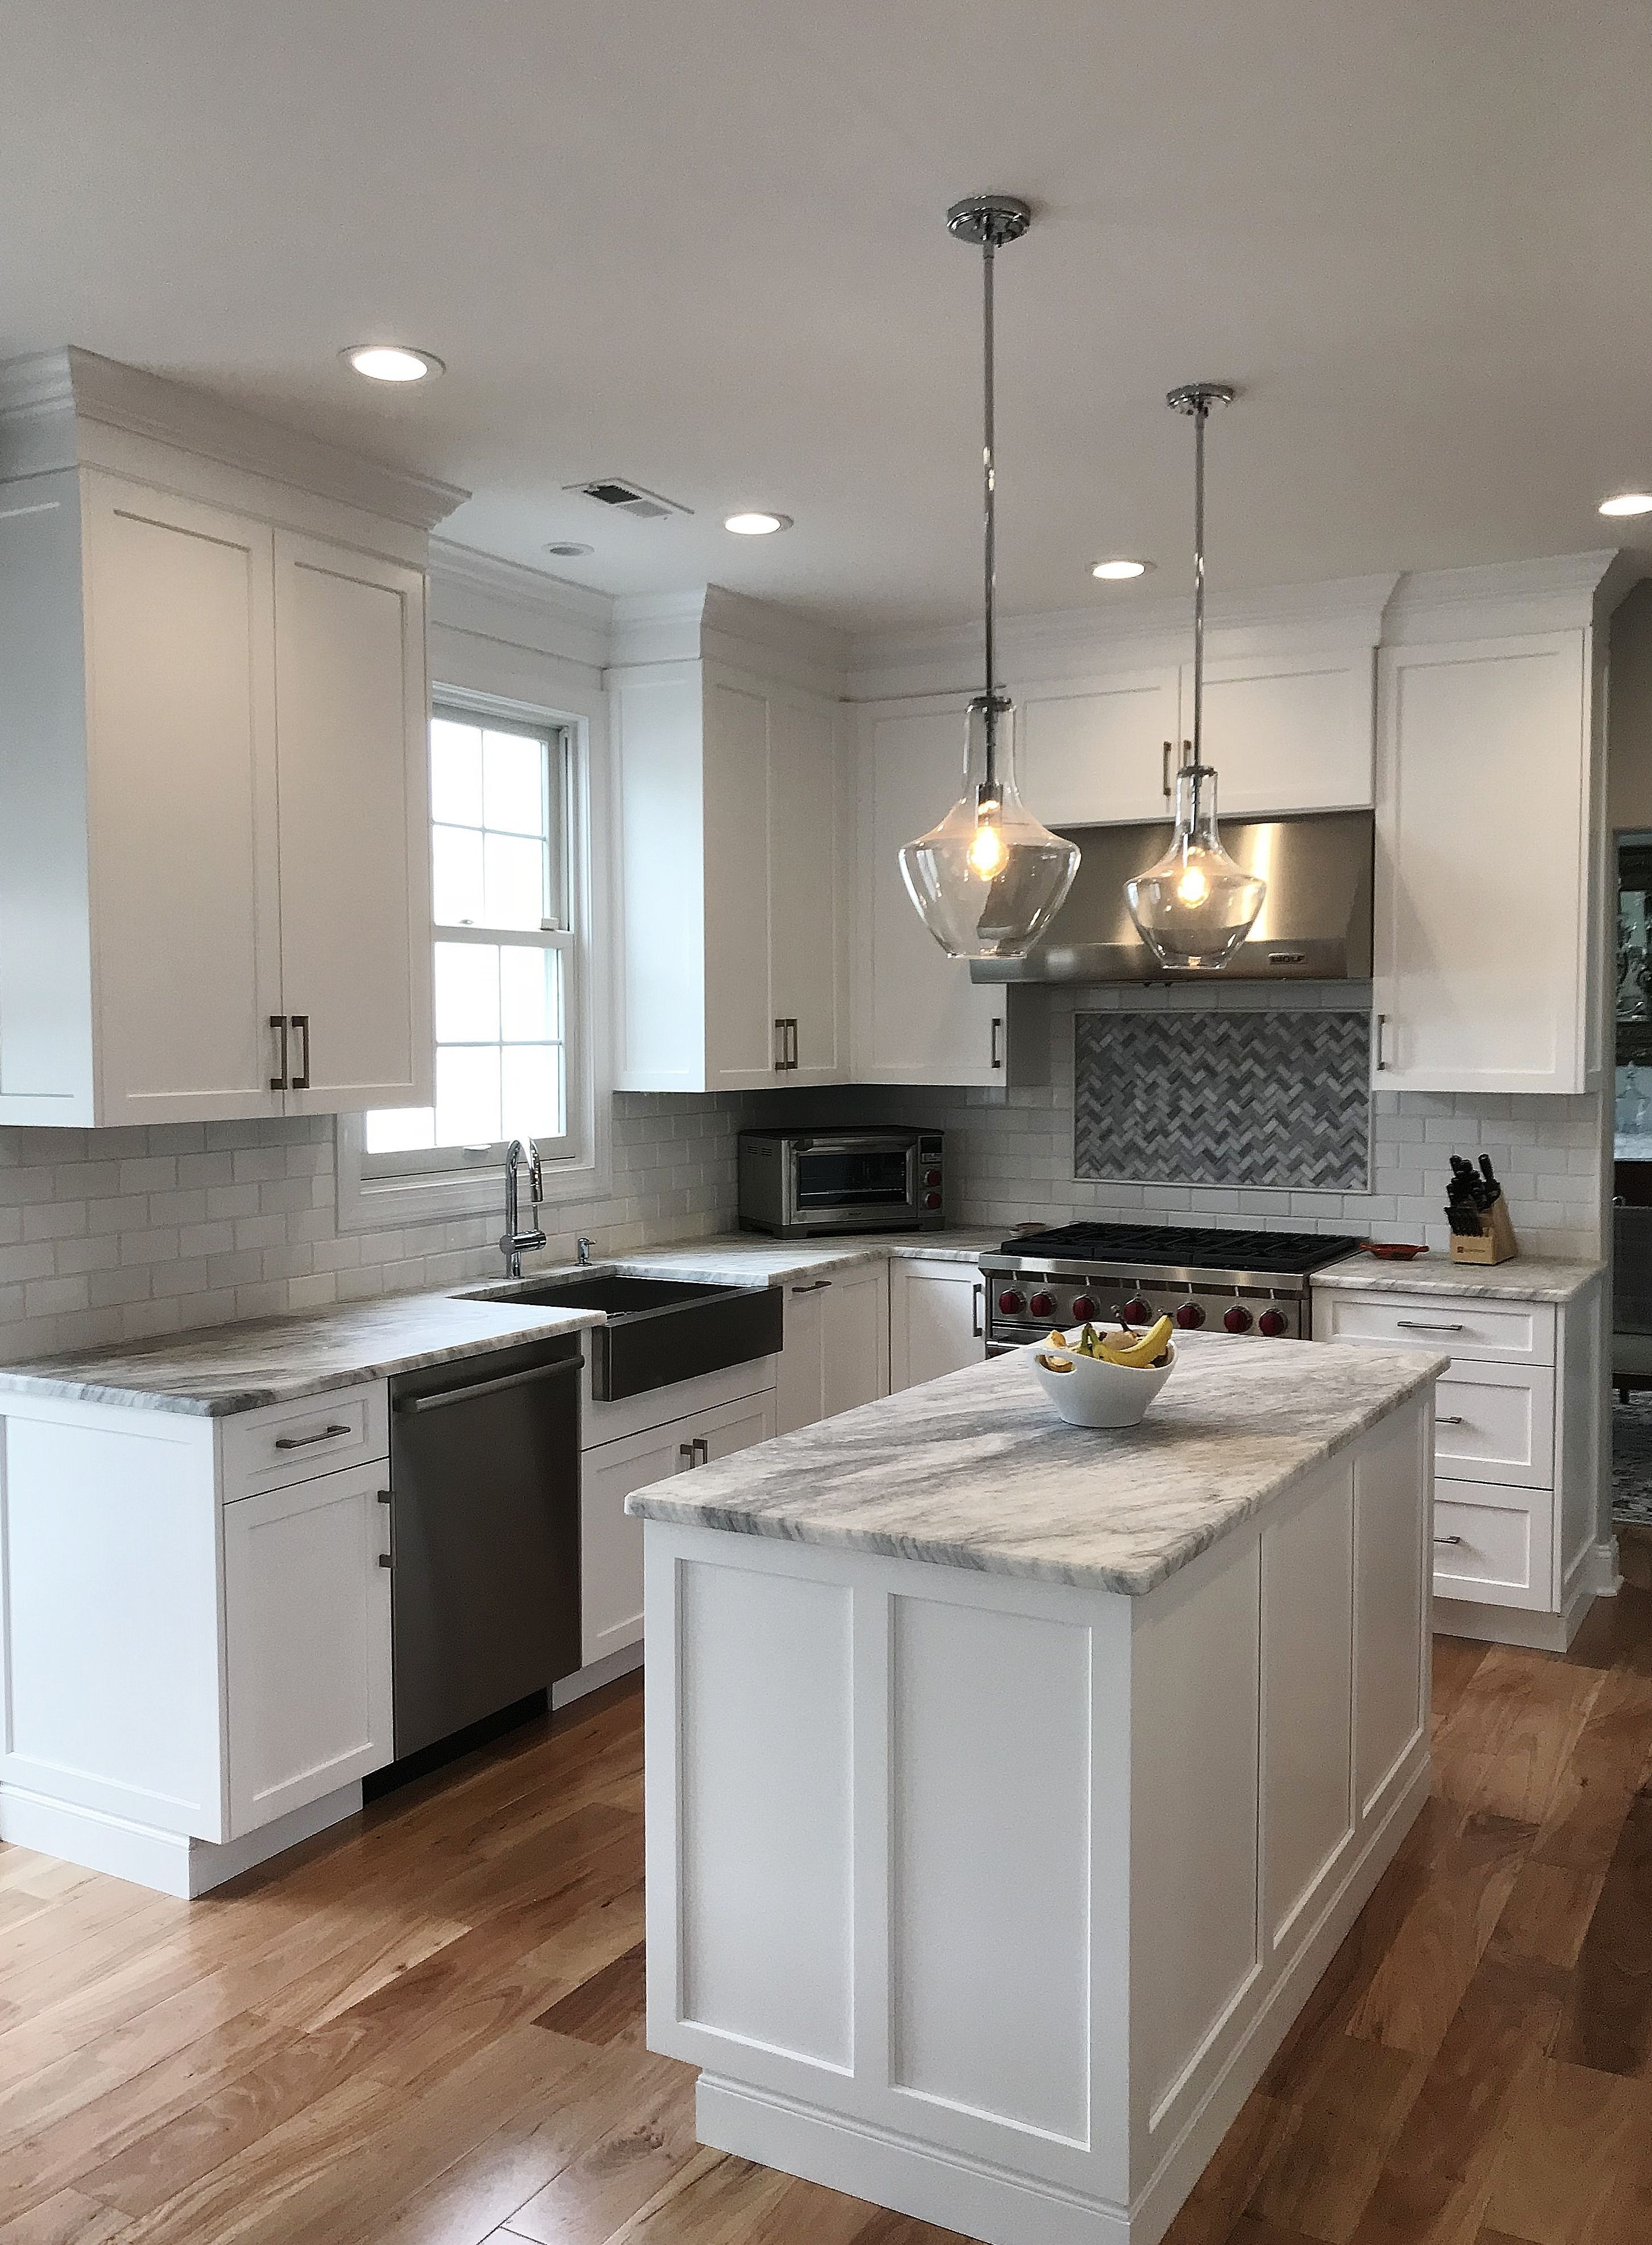 7 Awesome Kitchen Countertop Ideas For